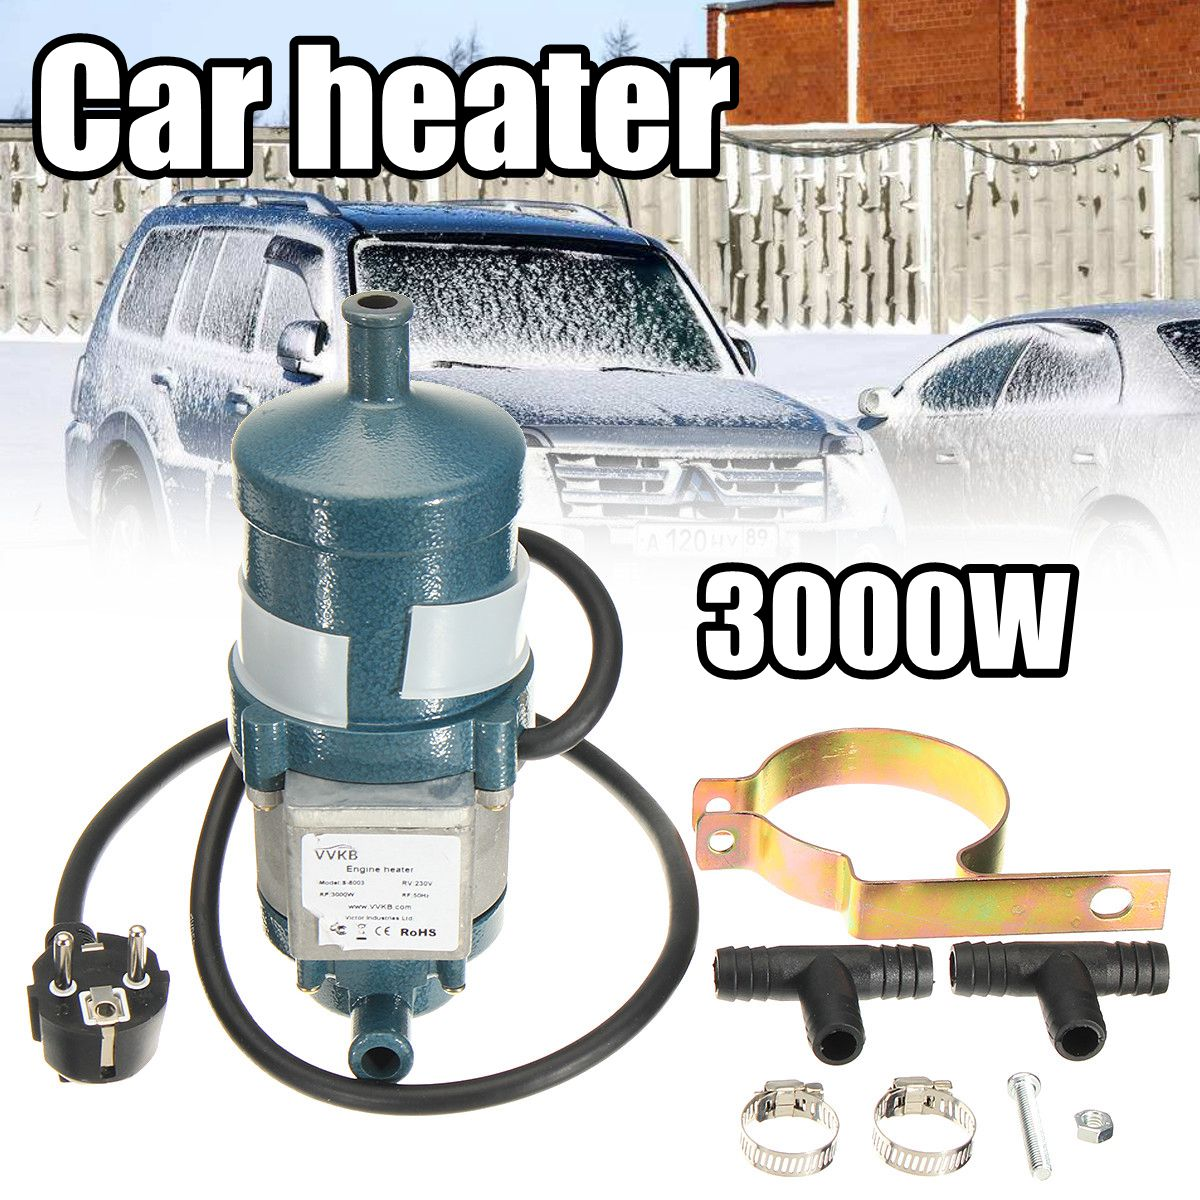 3000W 220V Circulating Water Heating Car Heater Engine Cycle Preheater Coolant Heating 220v 240v 1500w auto engine heater car preheater coolant heating air parking heater gasoline diesel motor heating preheating